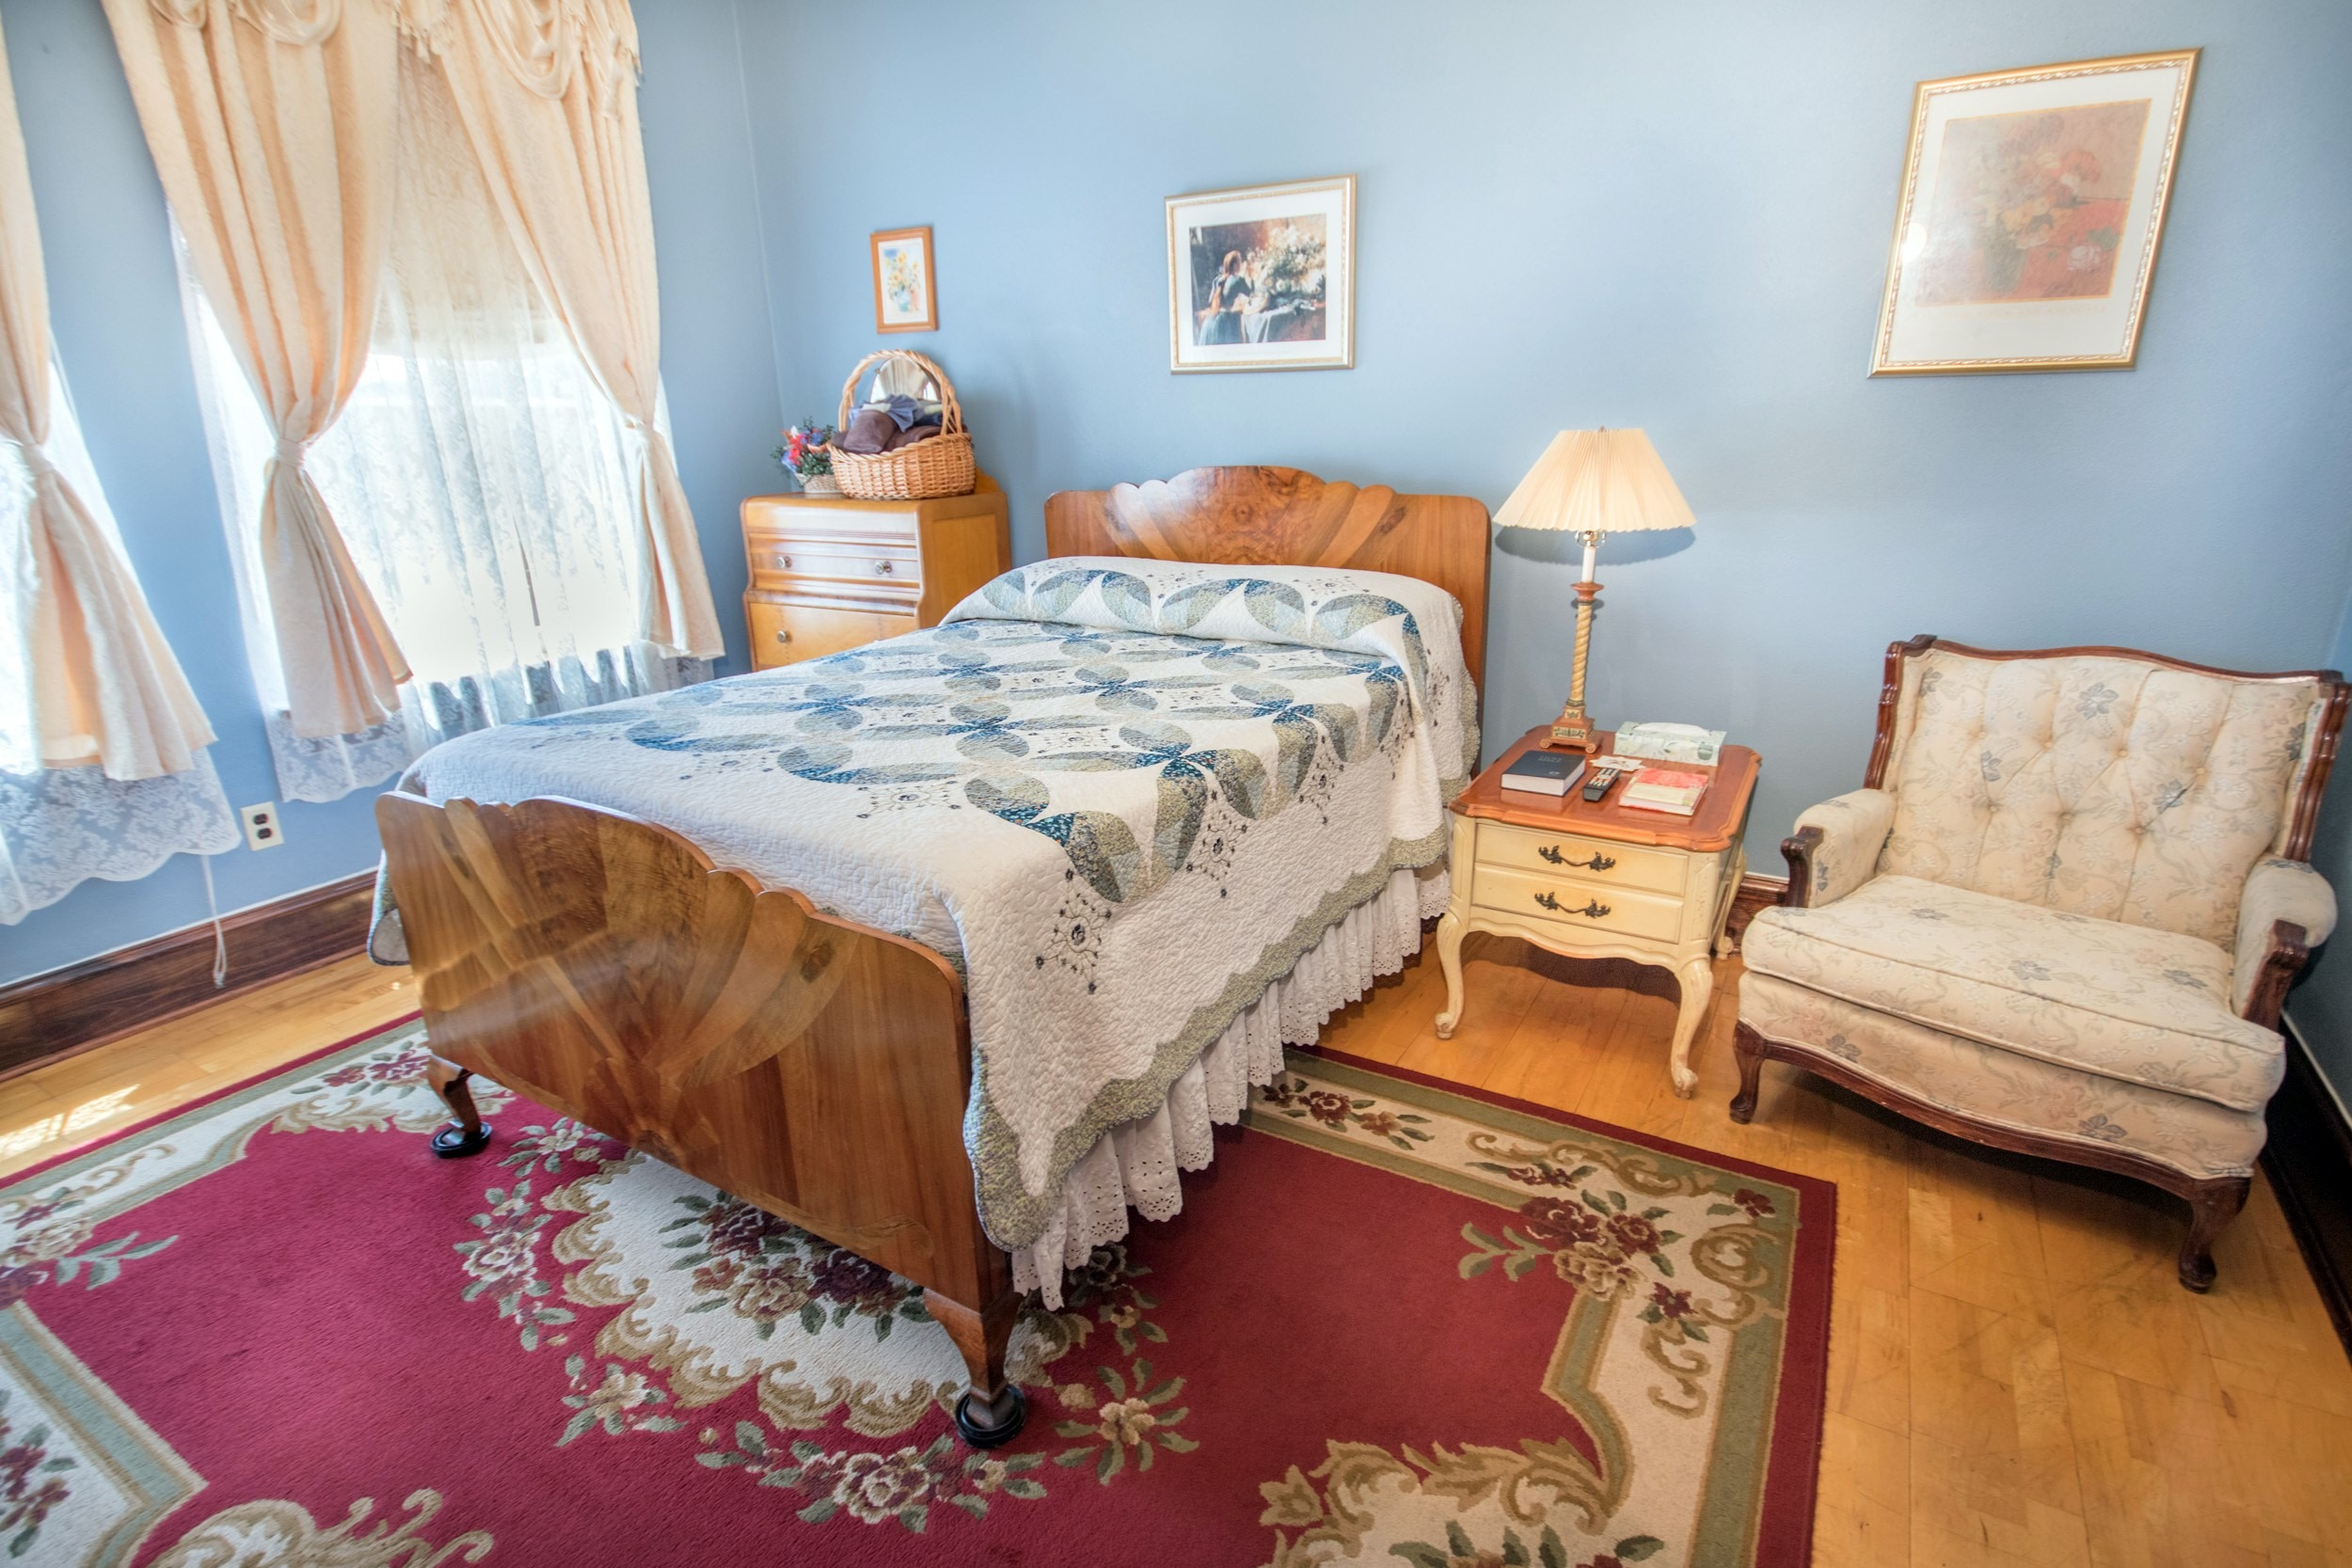 Hotel room with hardwood floors and blue walls